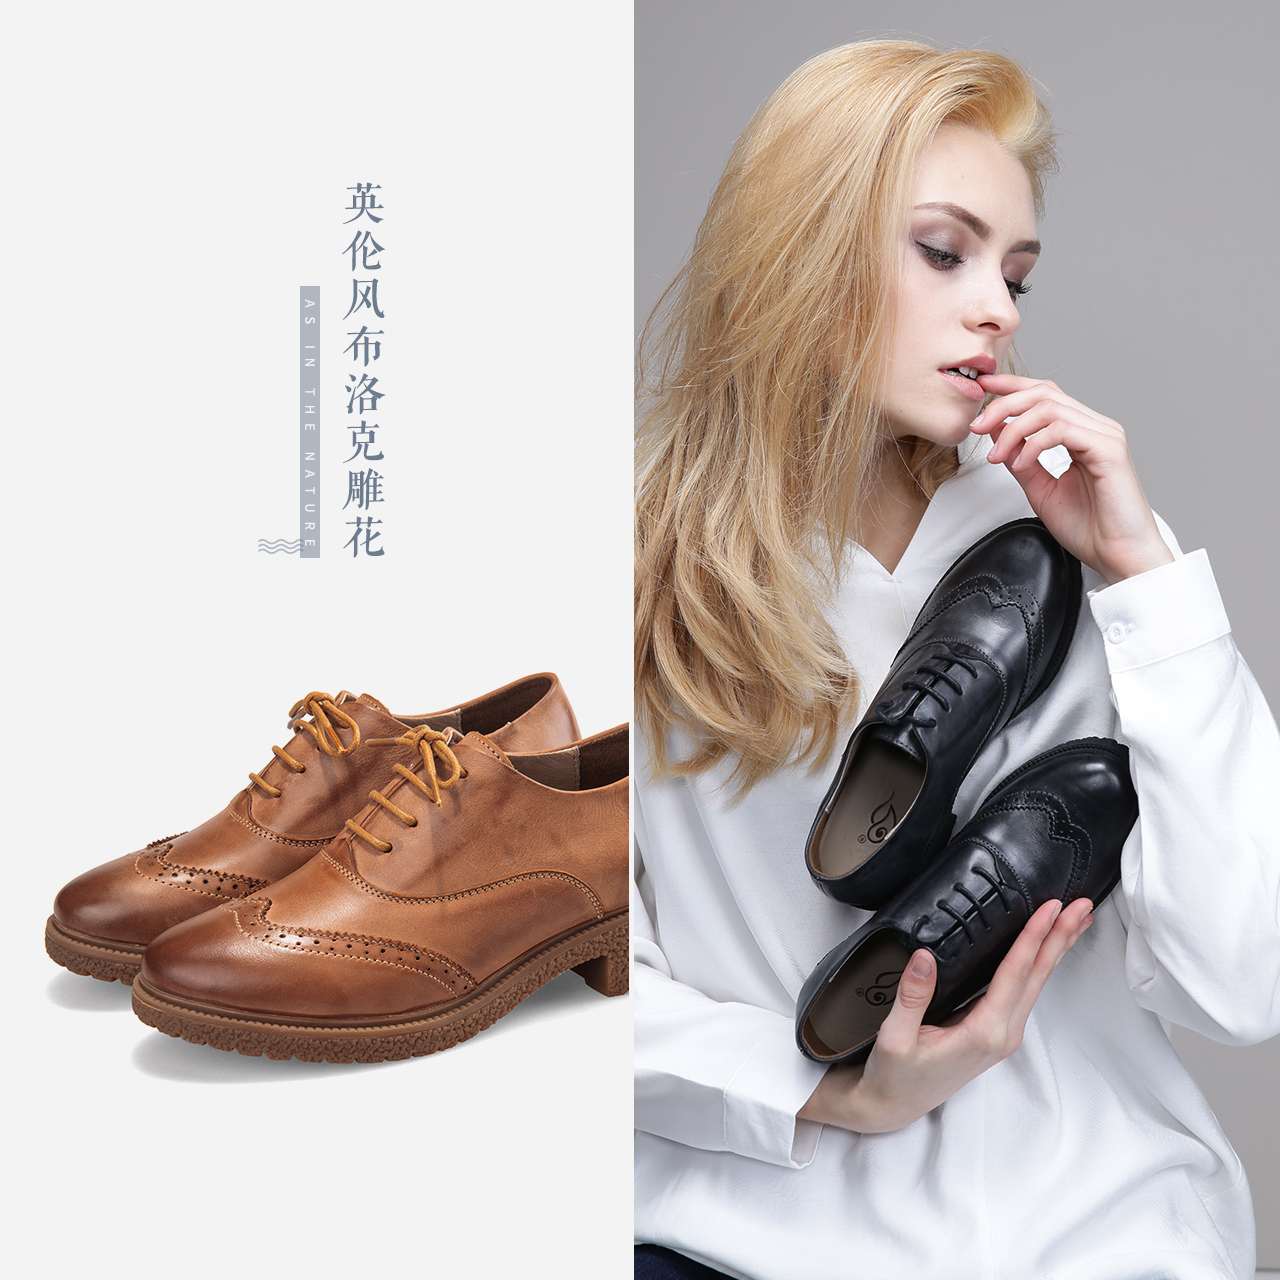 Qingwantian shoes womens British college style retro womens shoes Brock shoes womens leather single shoes womens middle heel Oxford